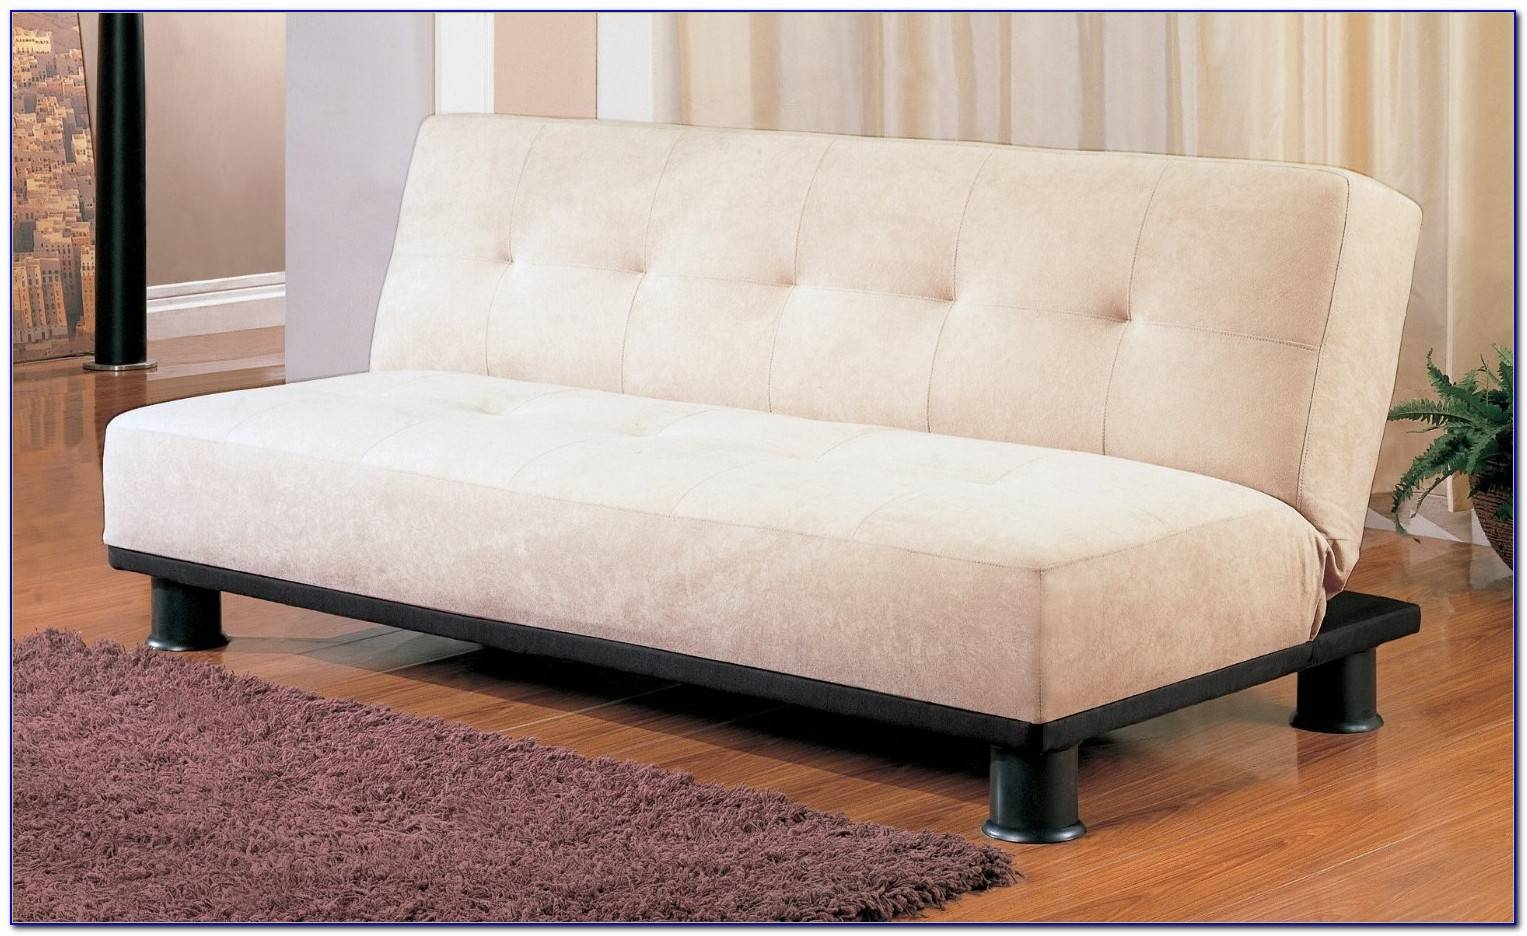 Sectional Armless Tufted Convertible Sofa Bed Castro F Home Design in Castro Convertible Sofas (Image 9 of 15)